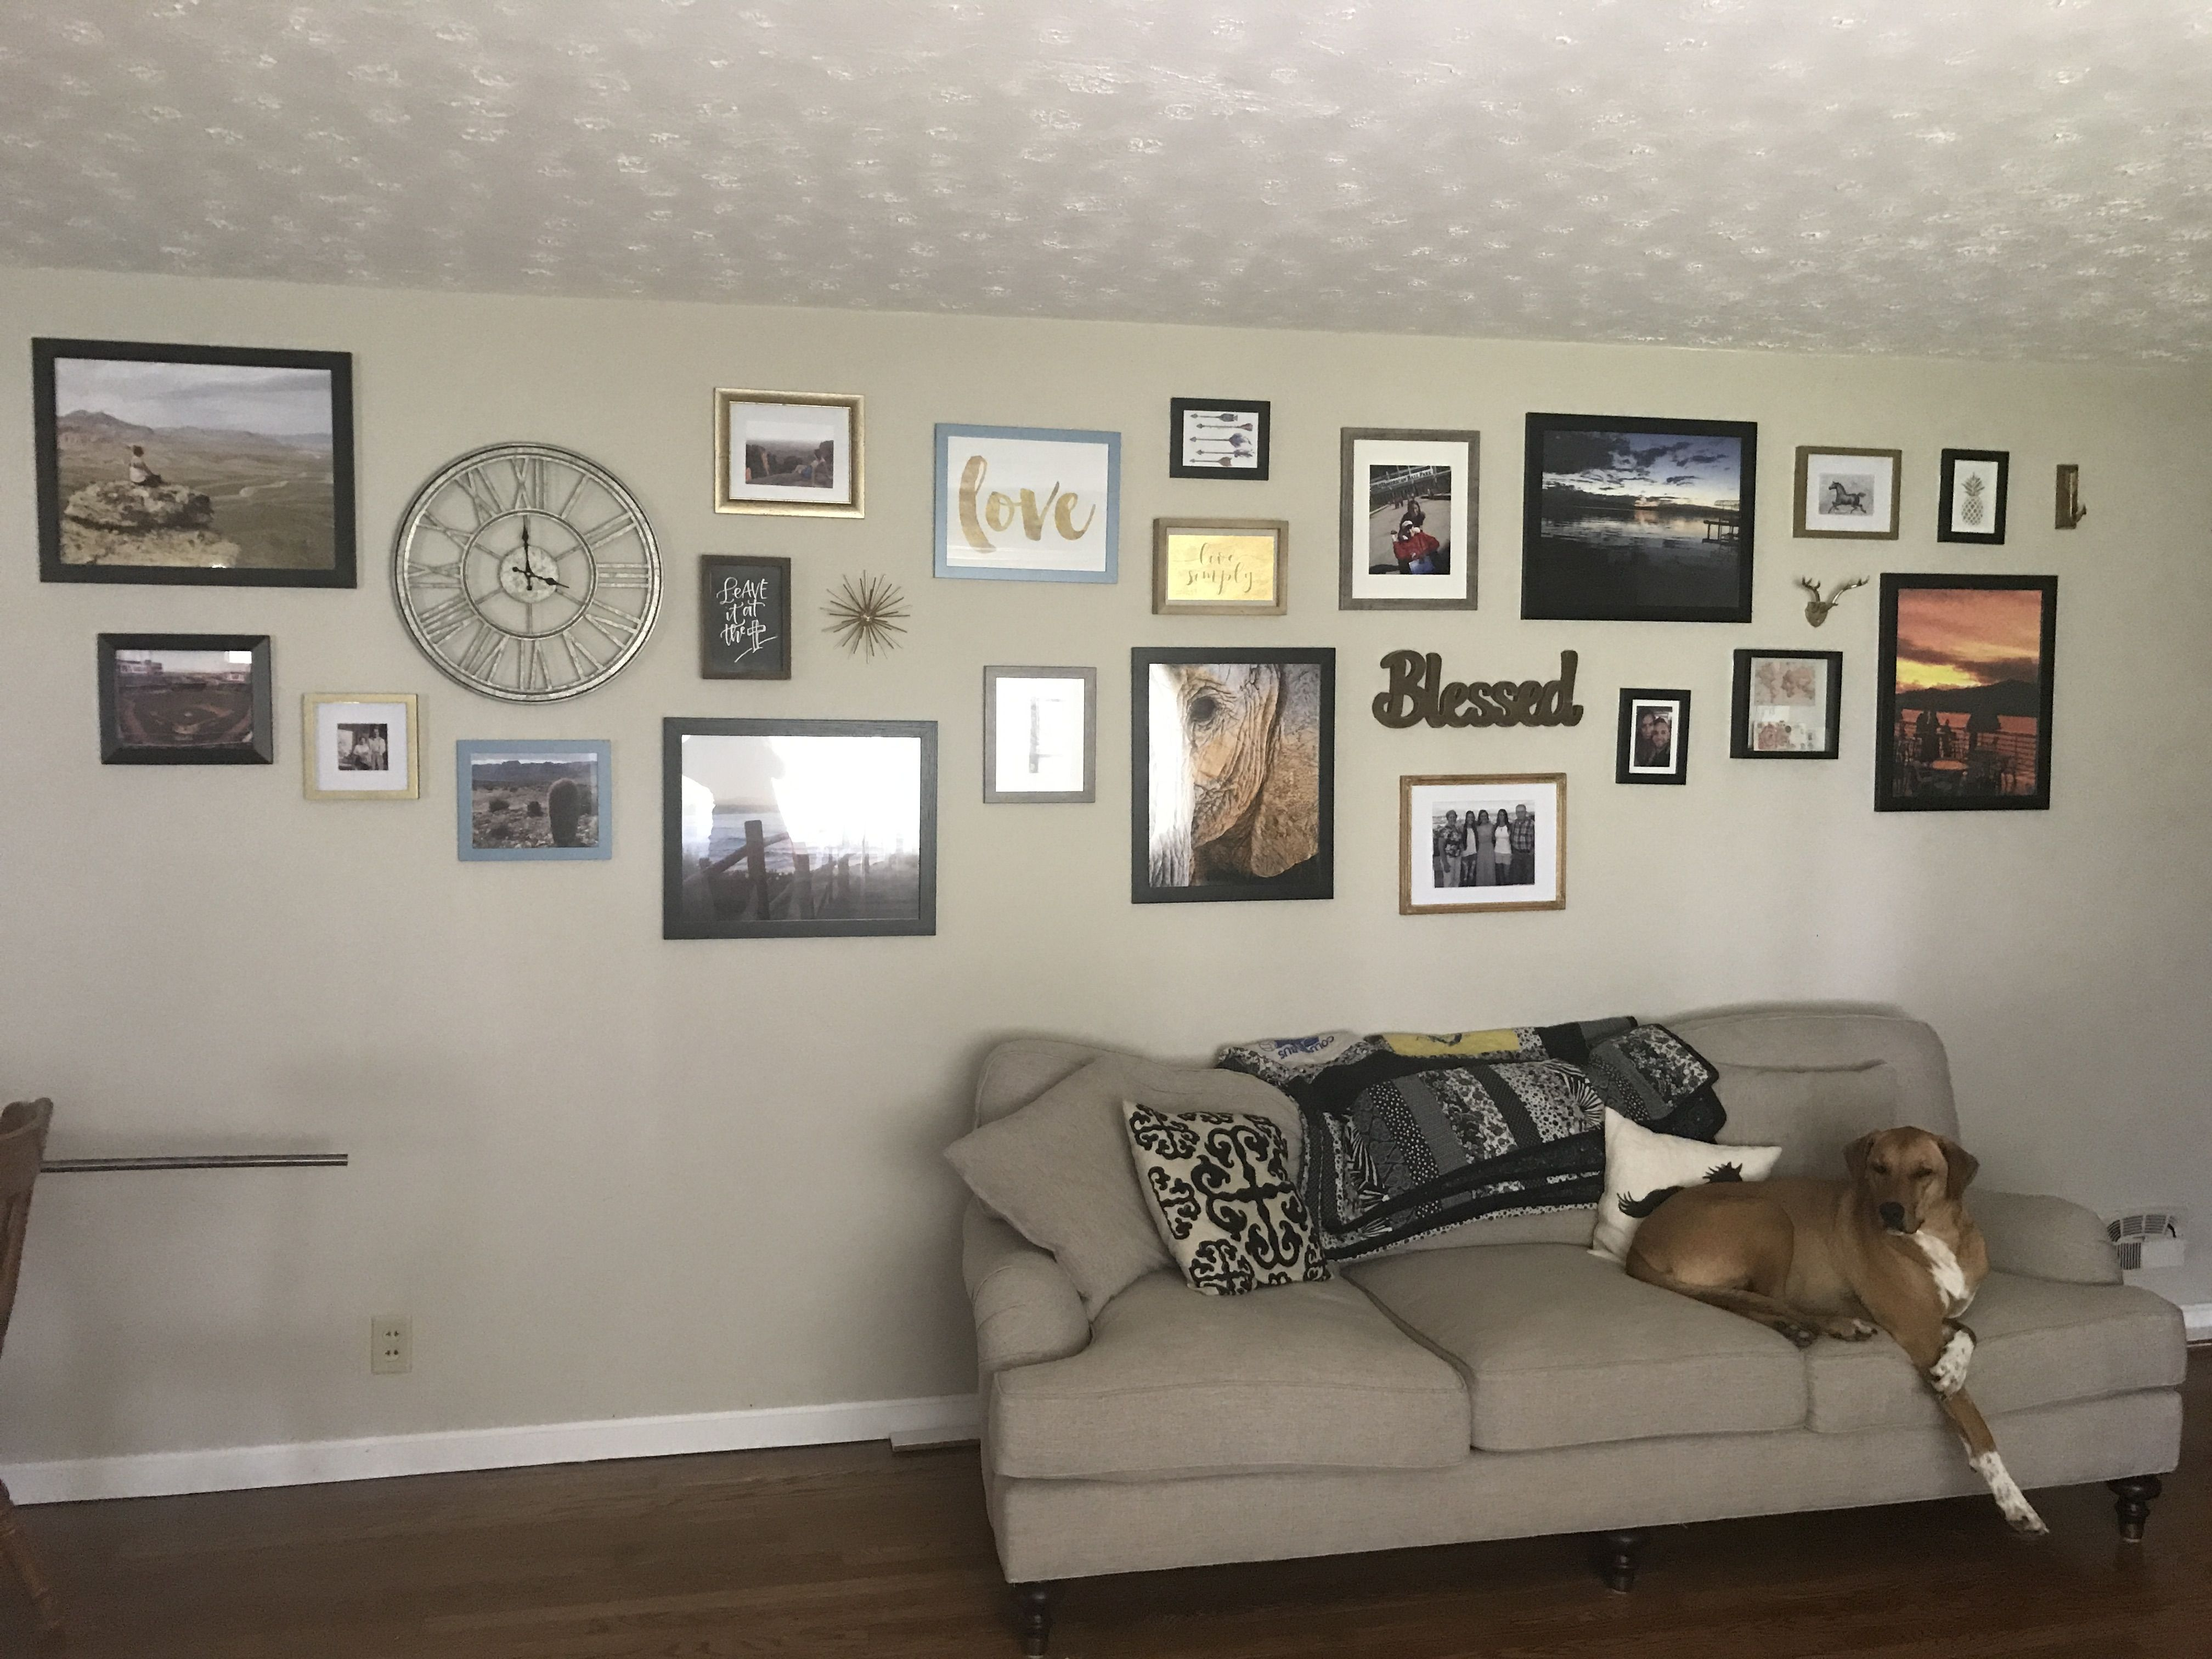 Gallery Wall For A Long Fill With Frames Of Alternating Colors Turned Out So Good Gallerywall Framewall